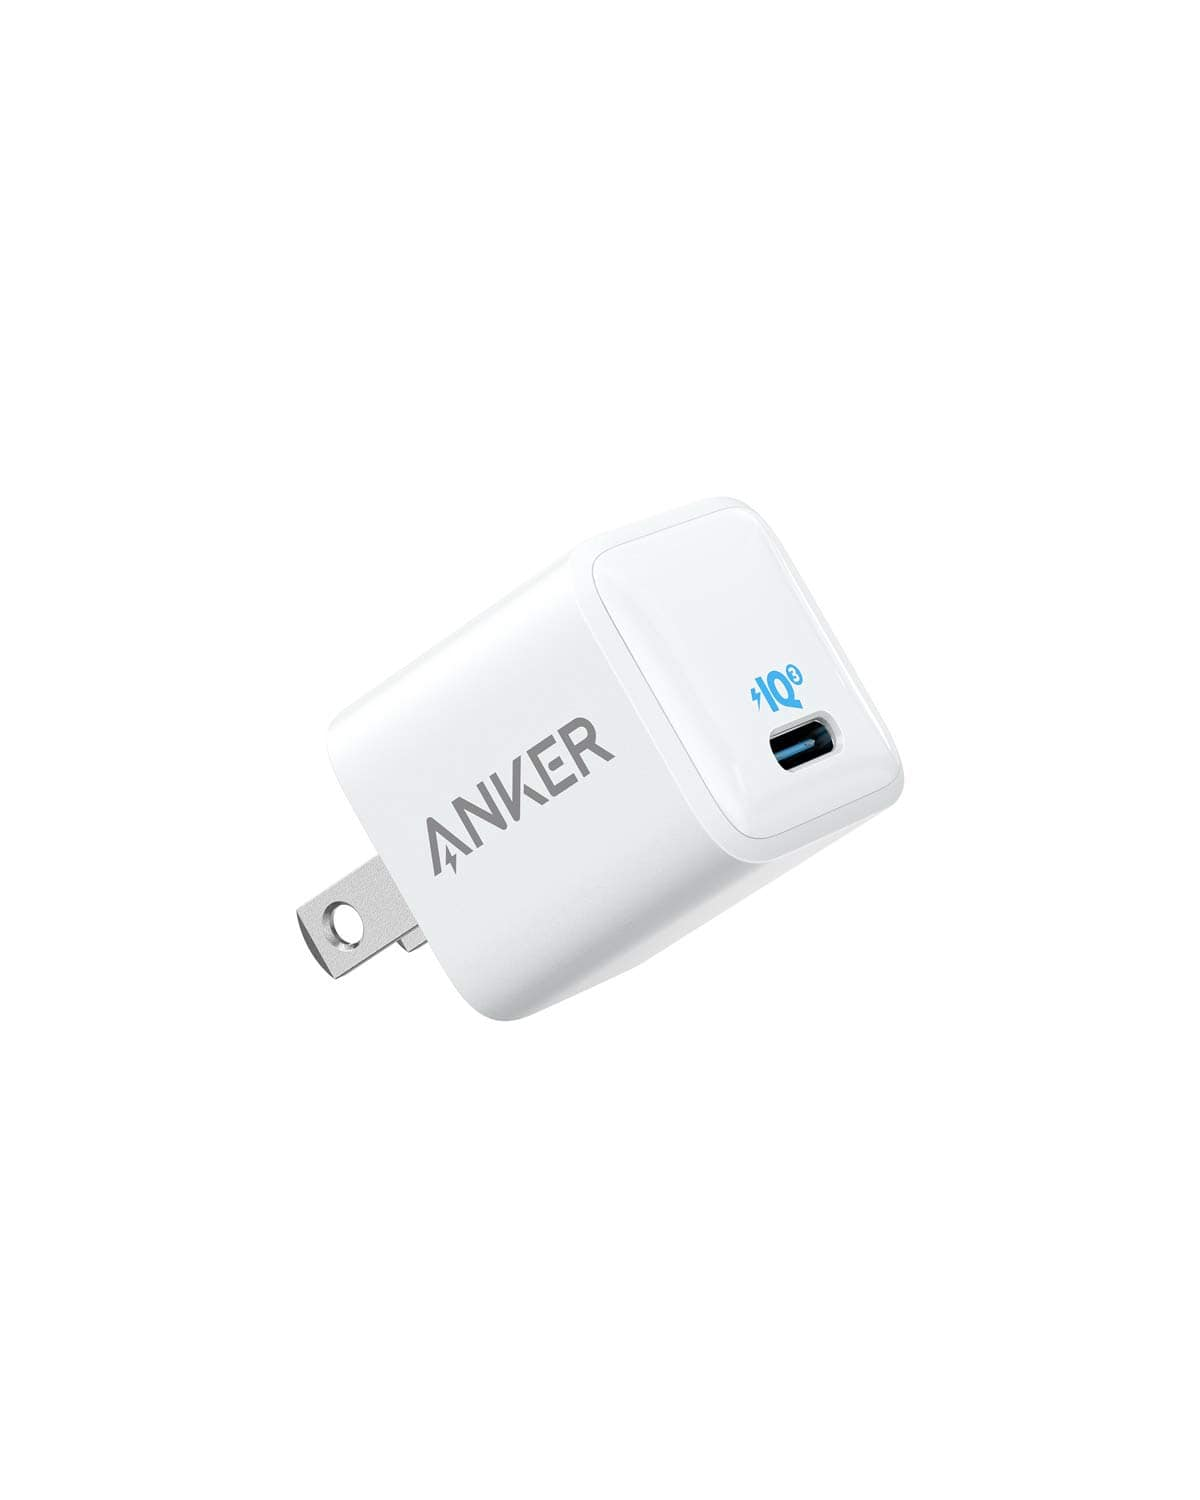 Anker PowerPort III Nano 18W PIQ 3.0 USB C Fast Charger Adapter $12 + Free Shipping, or Free Shipping w/ Prime or on orders over $25